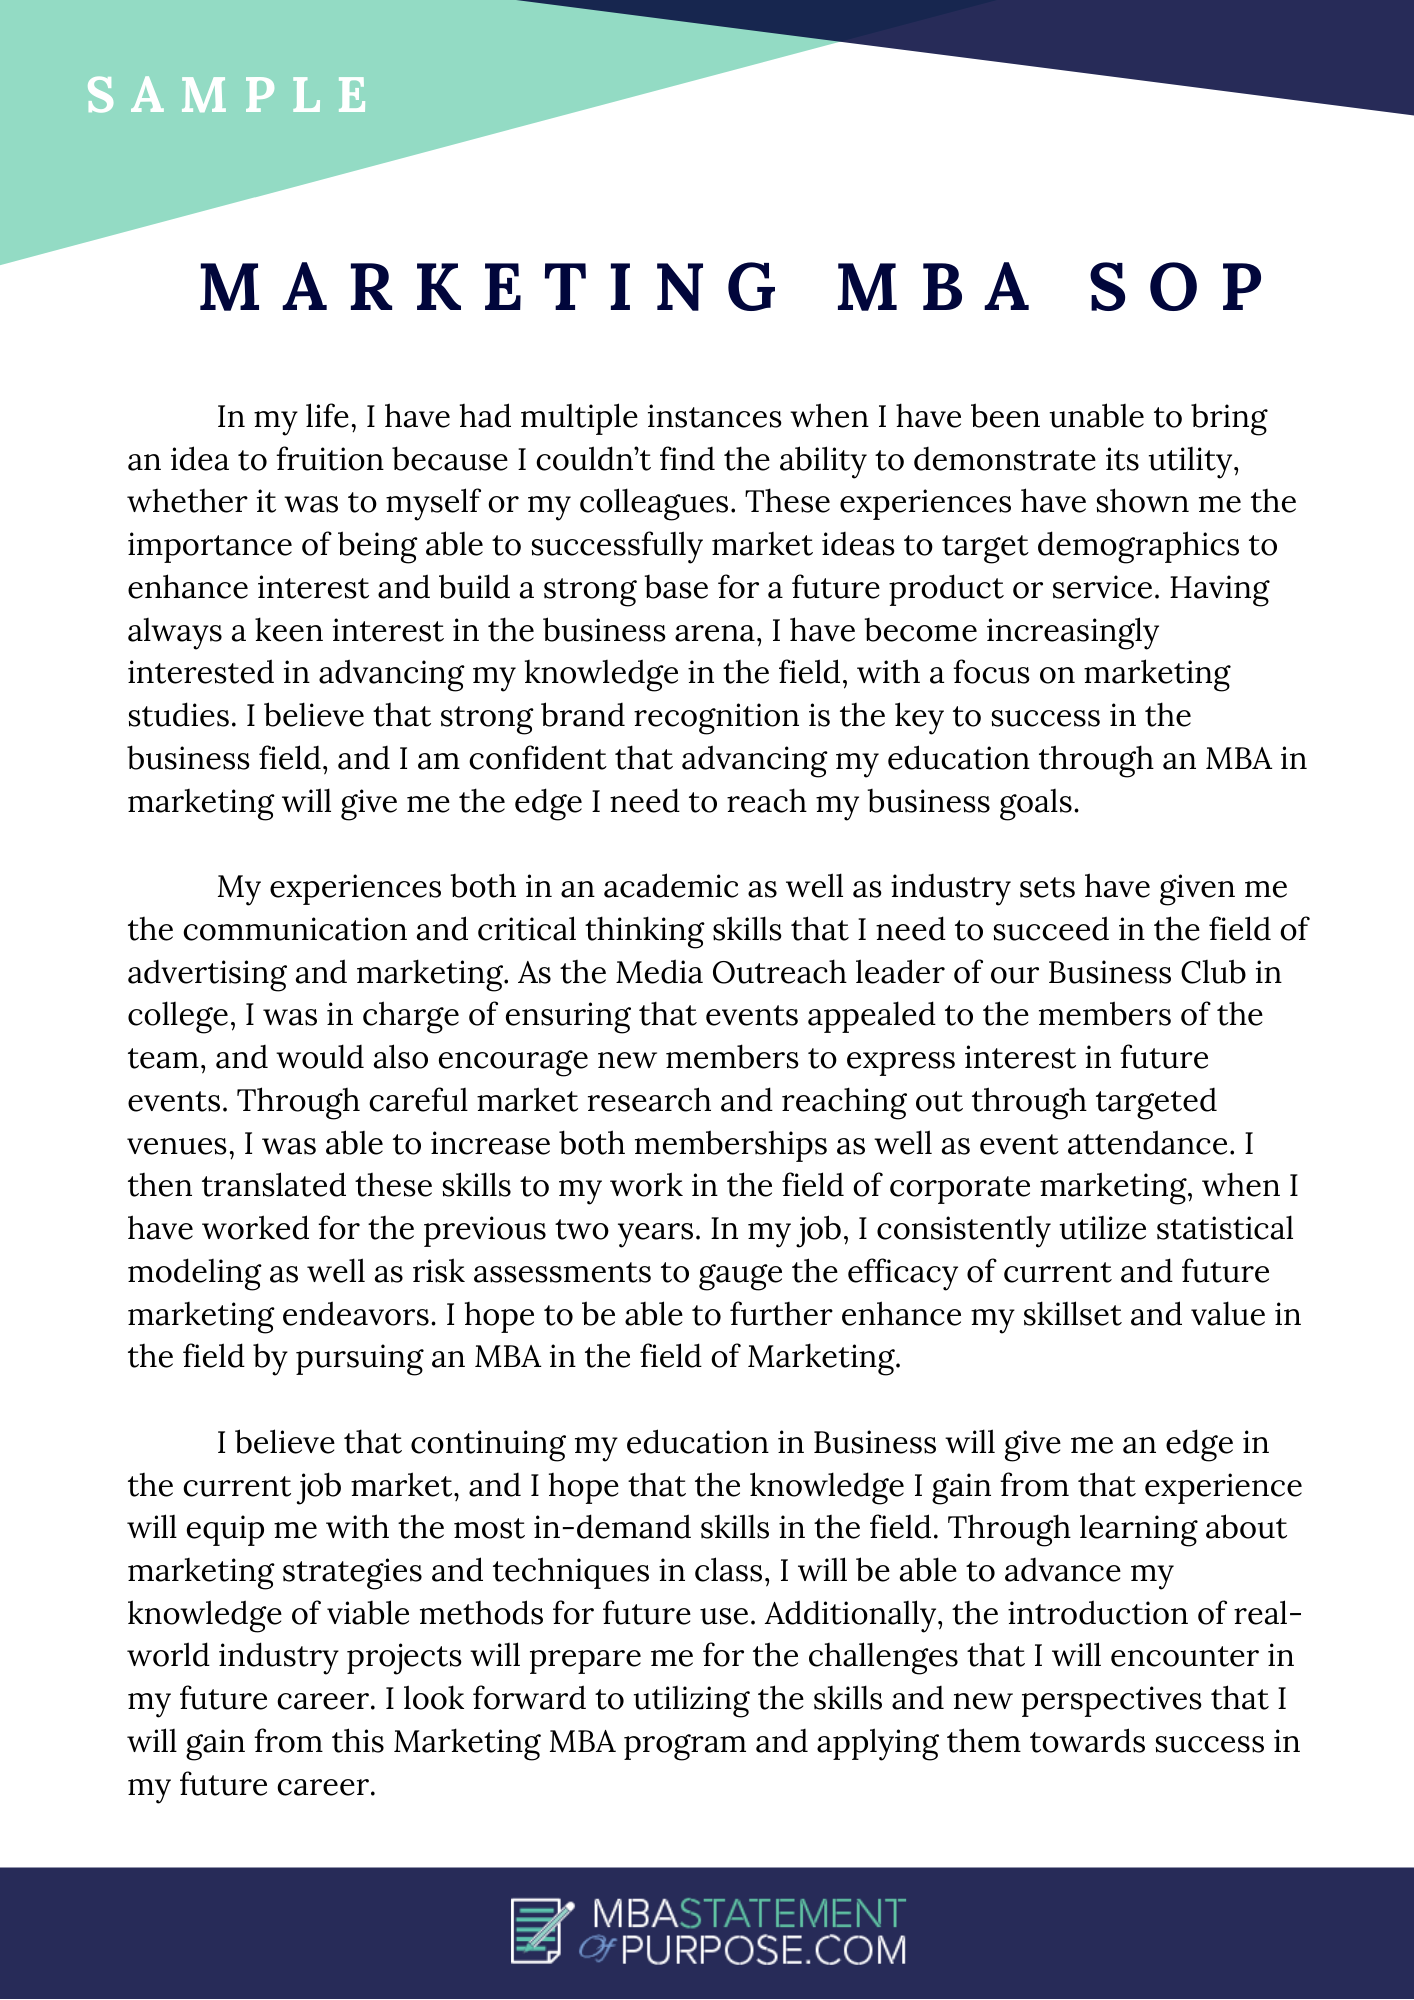 sample marketing mba sop